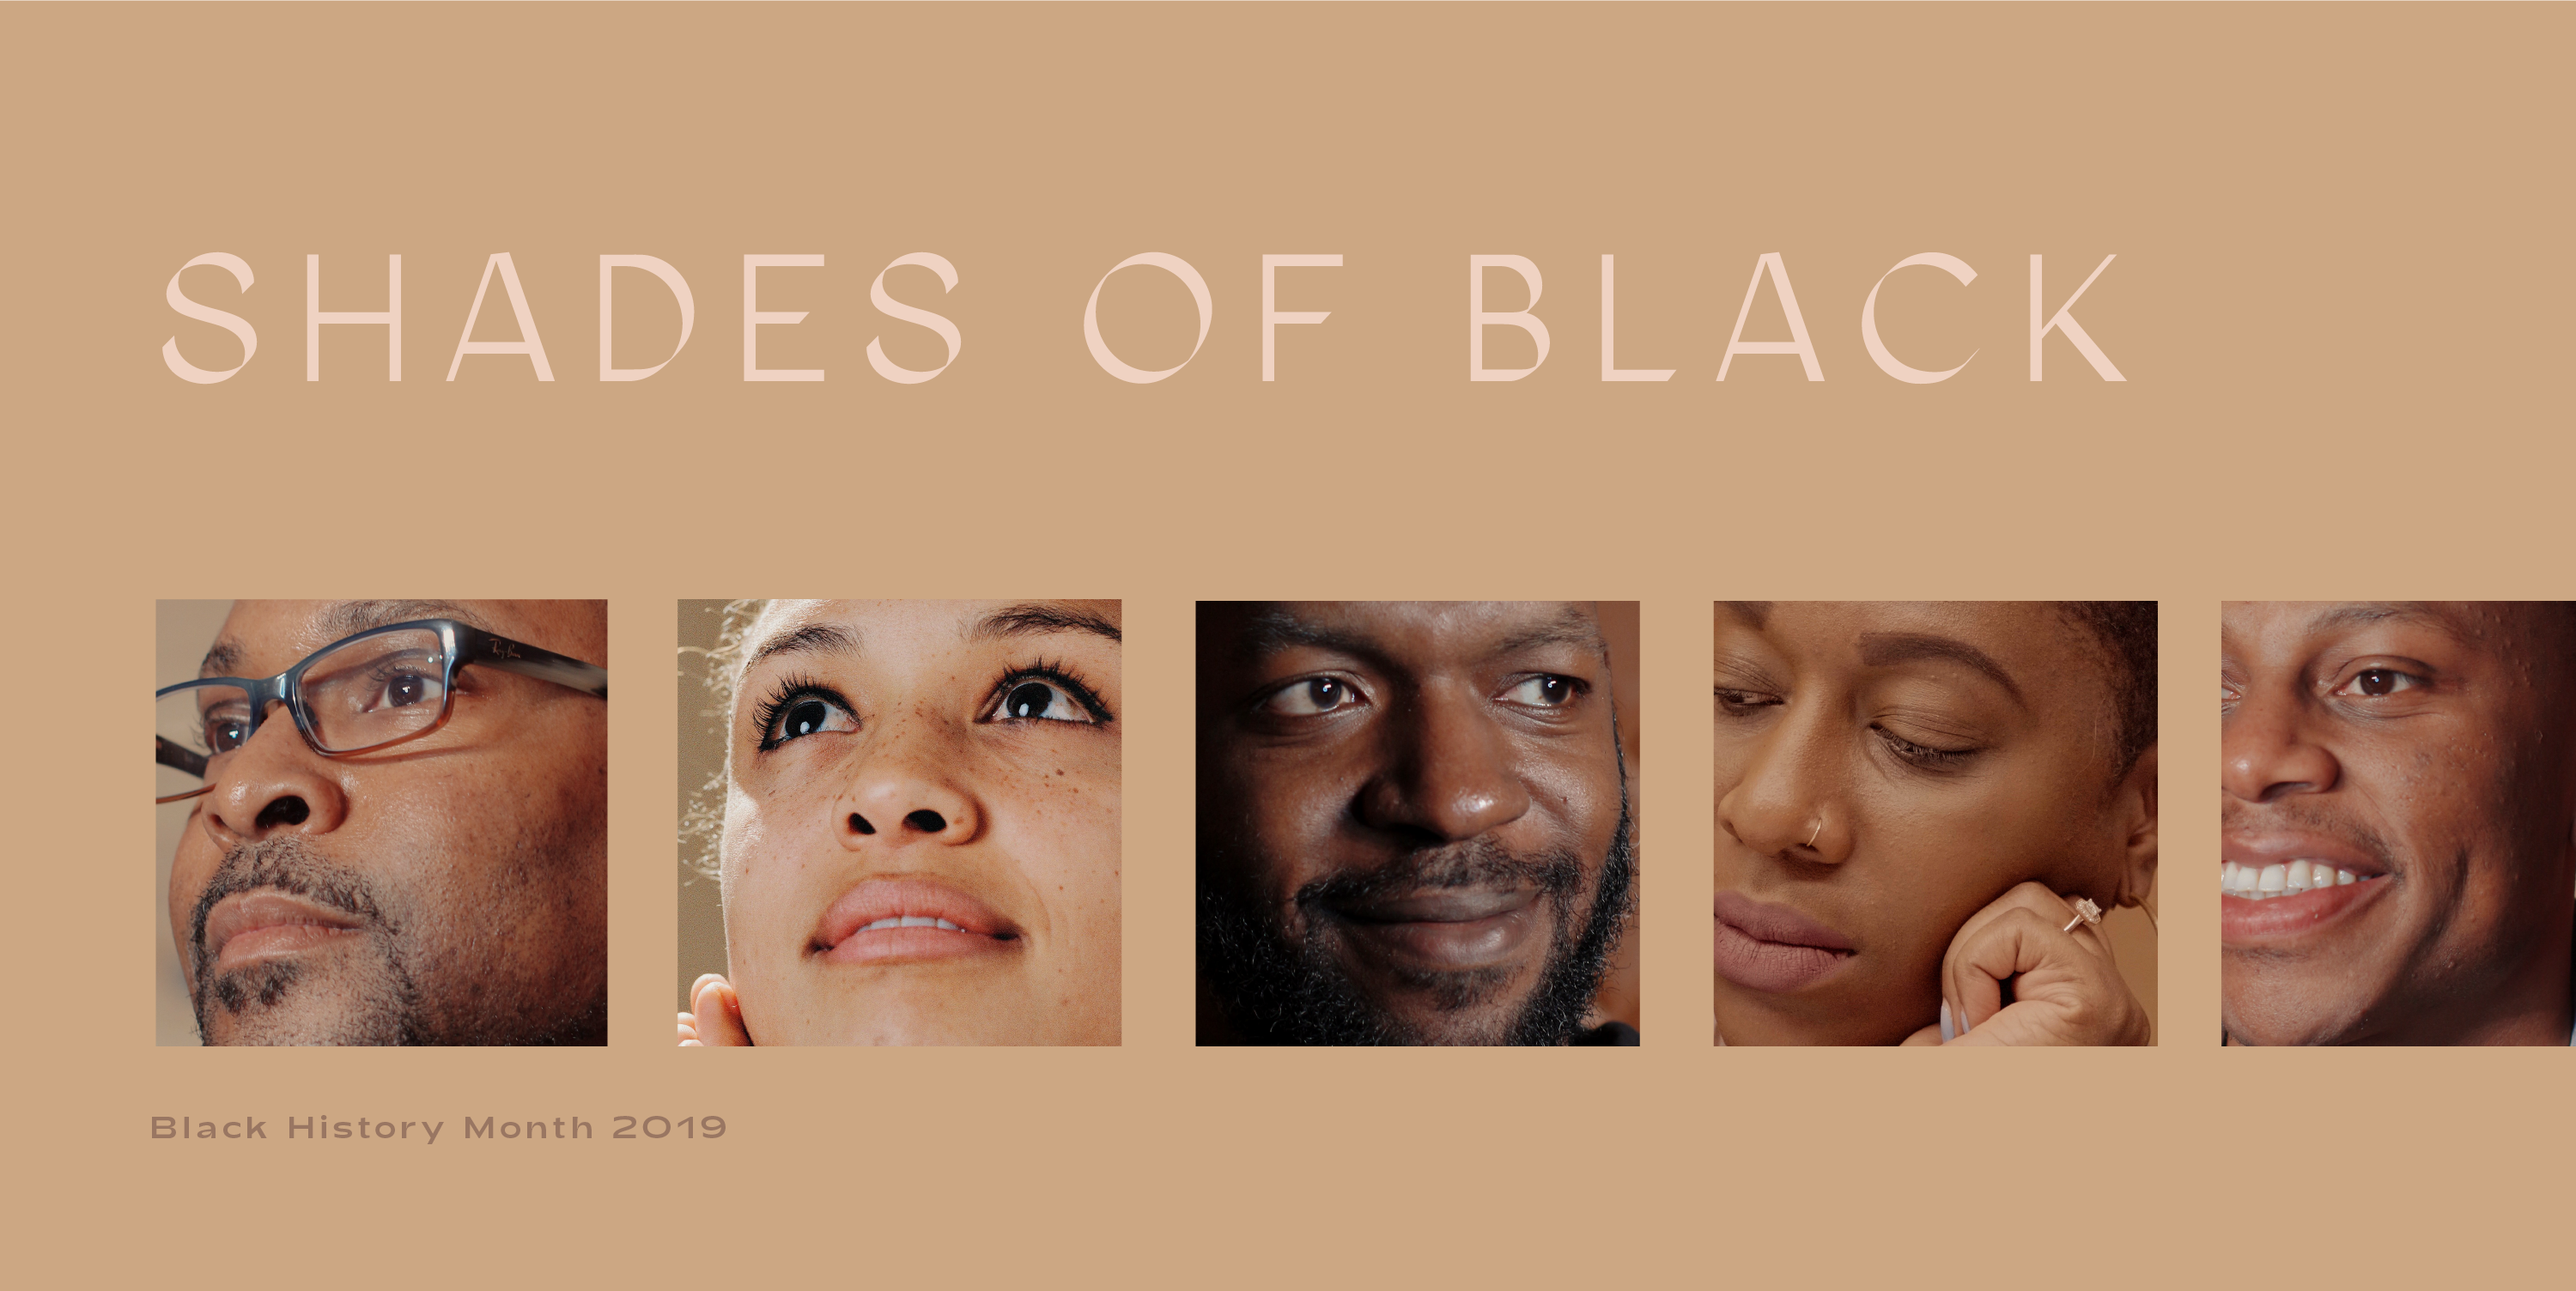 Shades Of Black Inclusion To Innovation Black History Month 2019 By Dropbox Life Inside Dropbox Medium